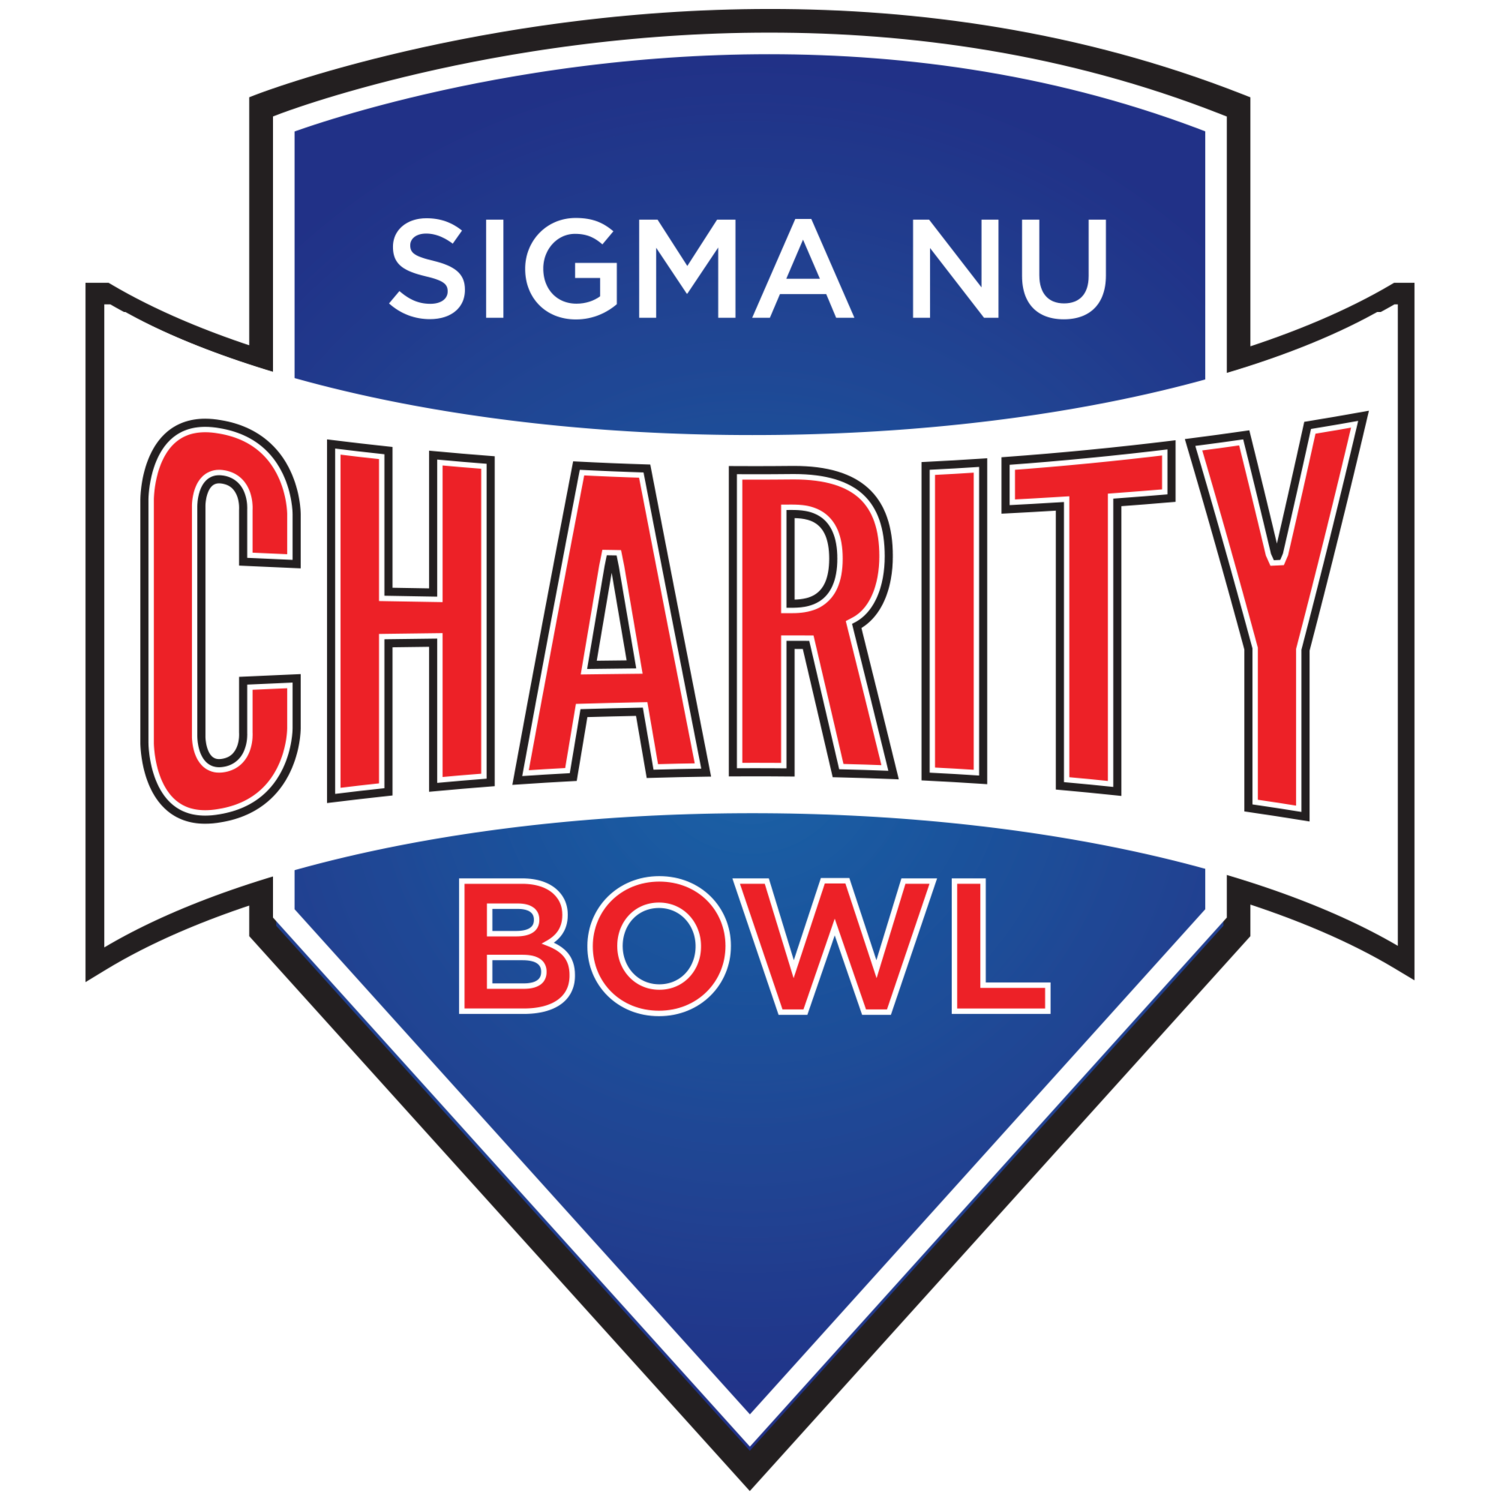 Ole miss football clipart graphic freeuse Sigma Nu Charity Bowl graphic freeuse